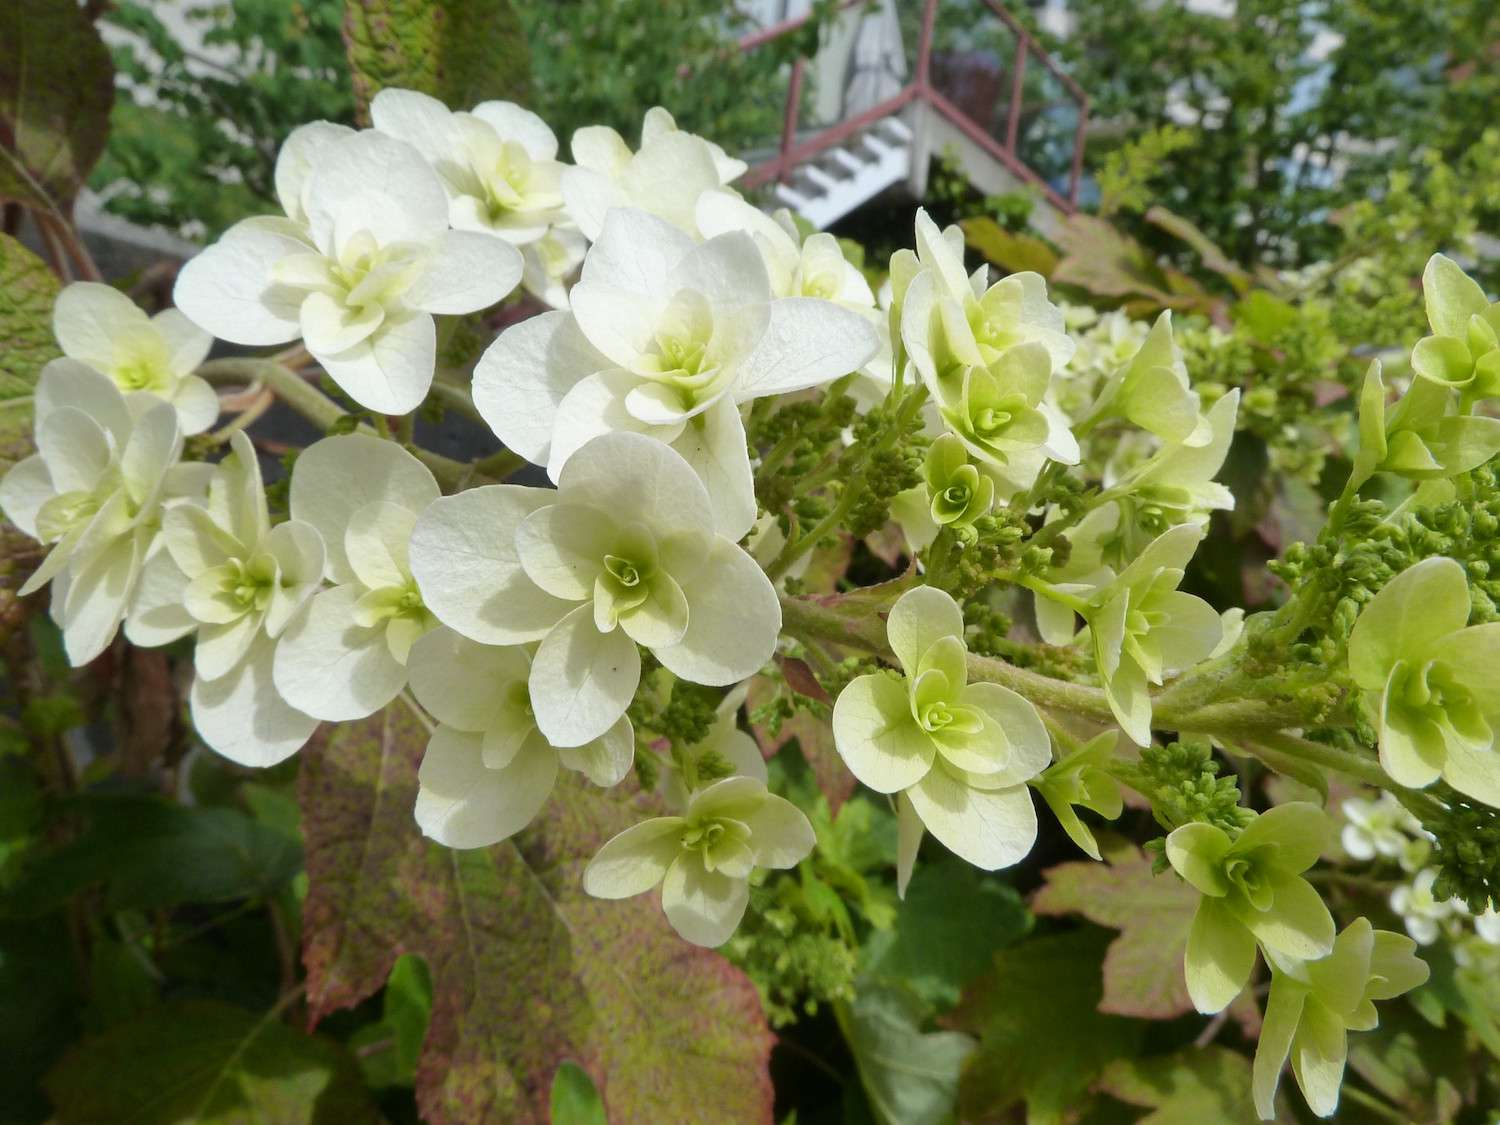 A cluster of white-petaled hydrangeas